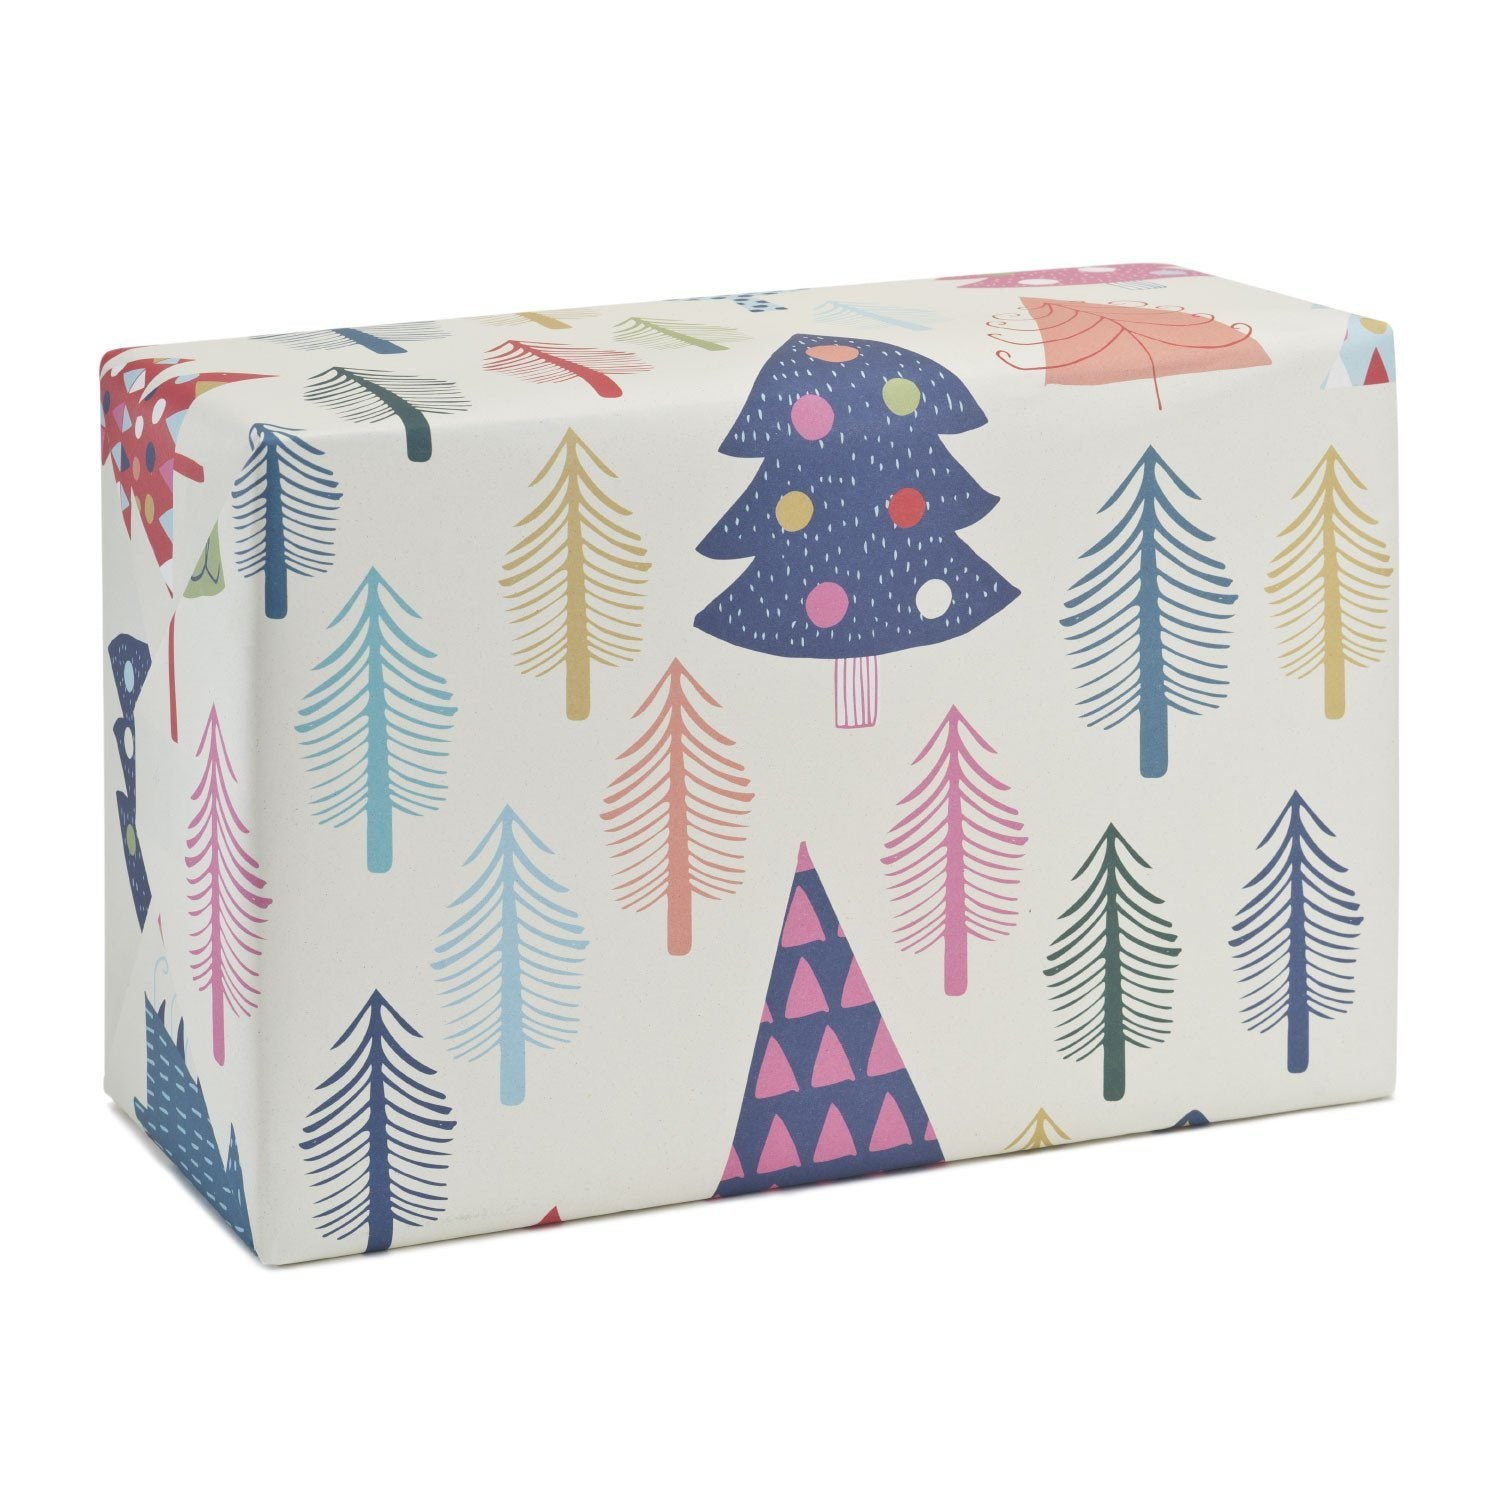 White Christmas Wrapping Paper - Wrapping Papers - MULTIFOLIA ATELIER di Rita Girola - Naiise